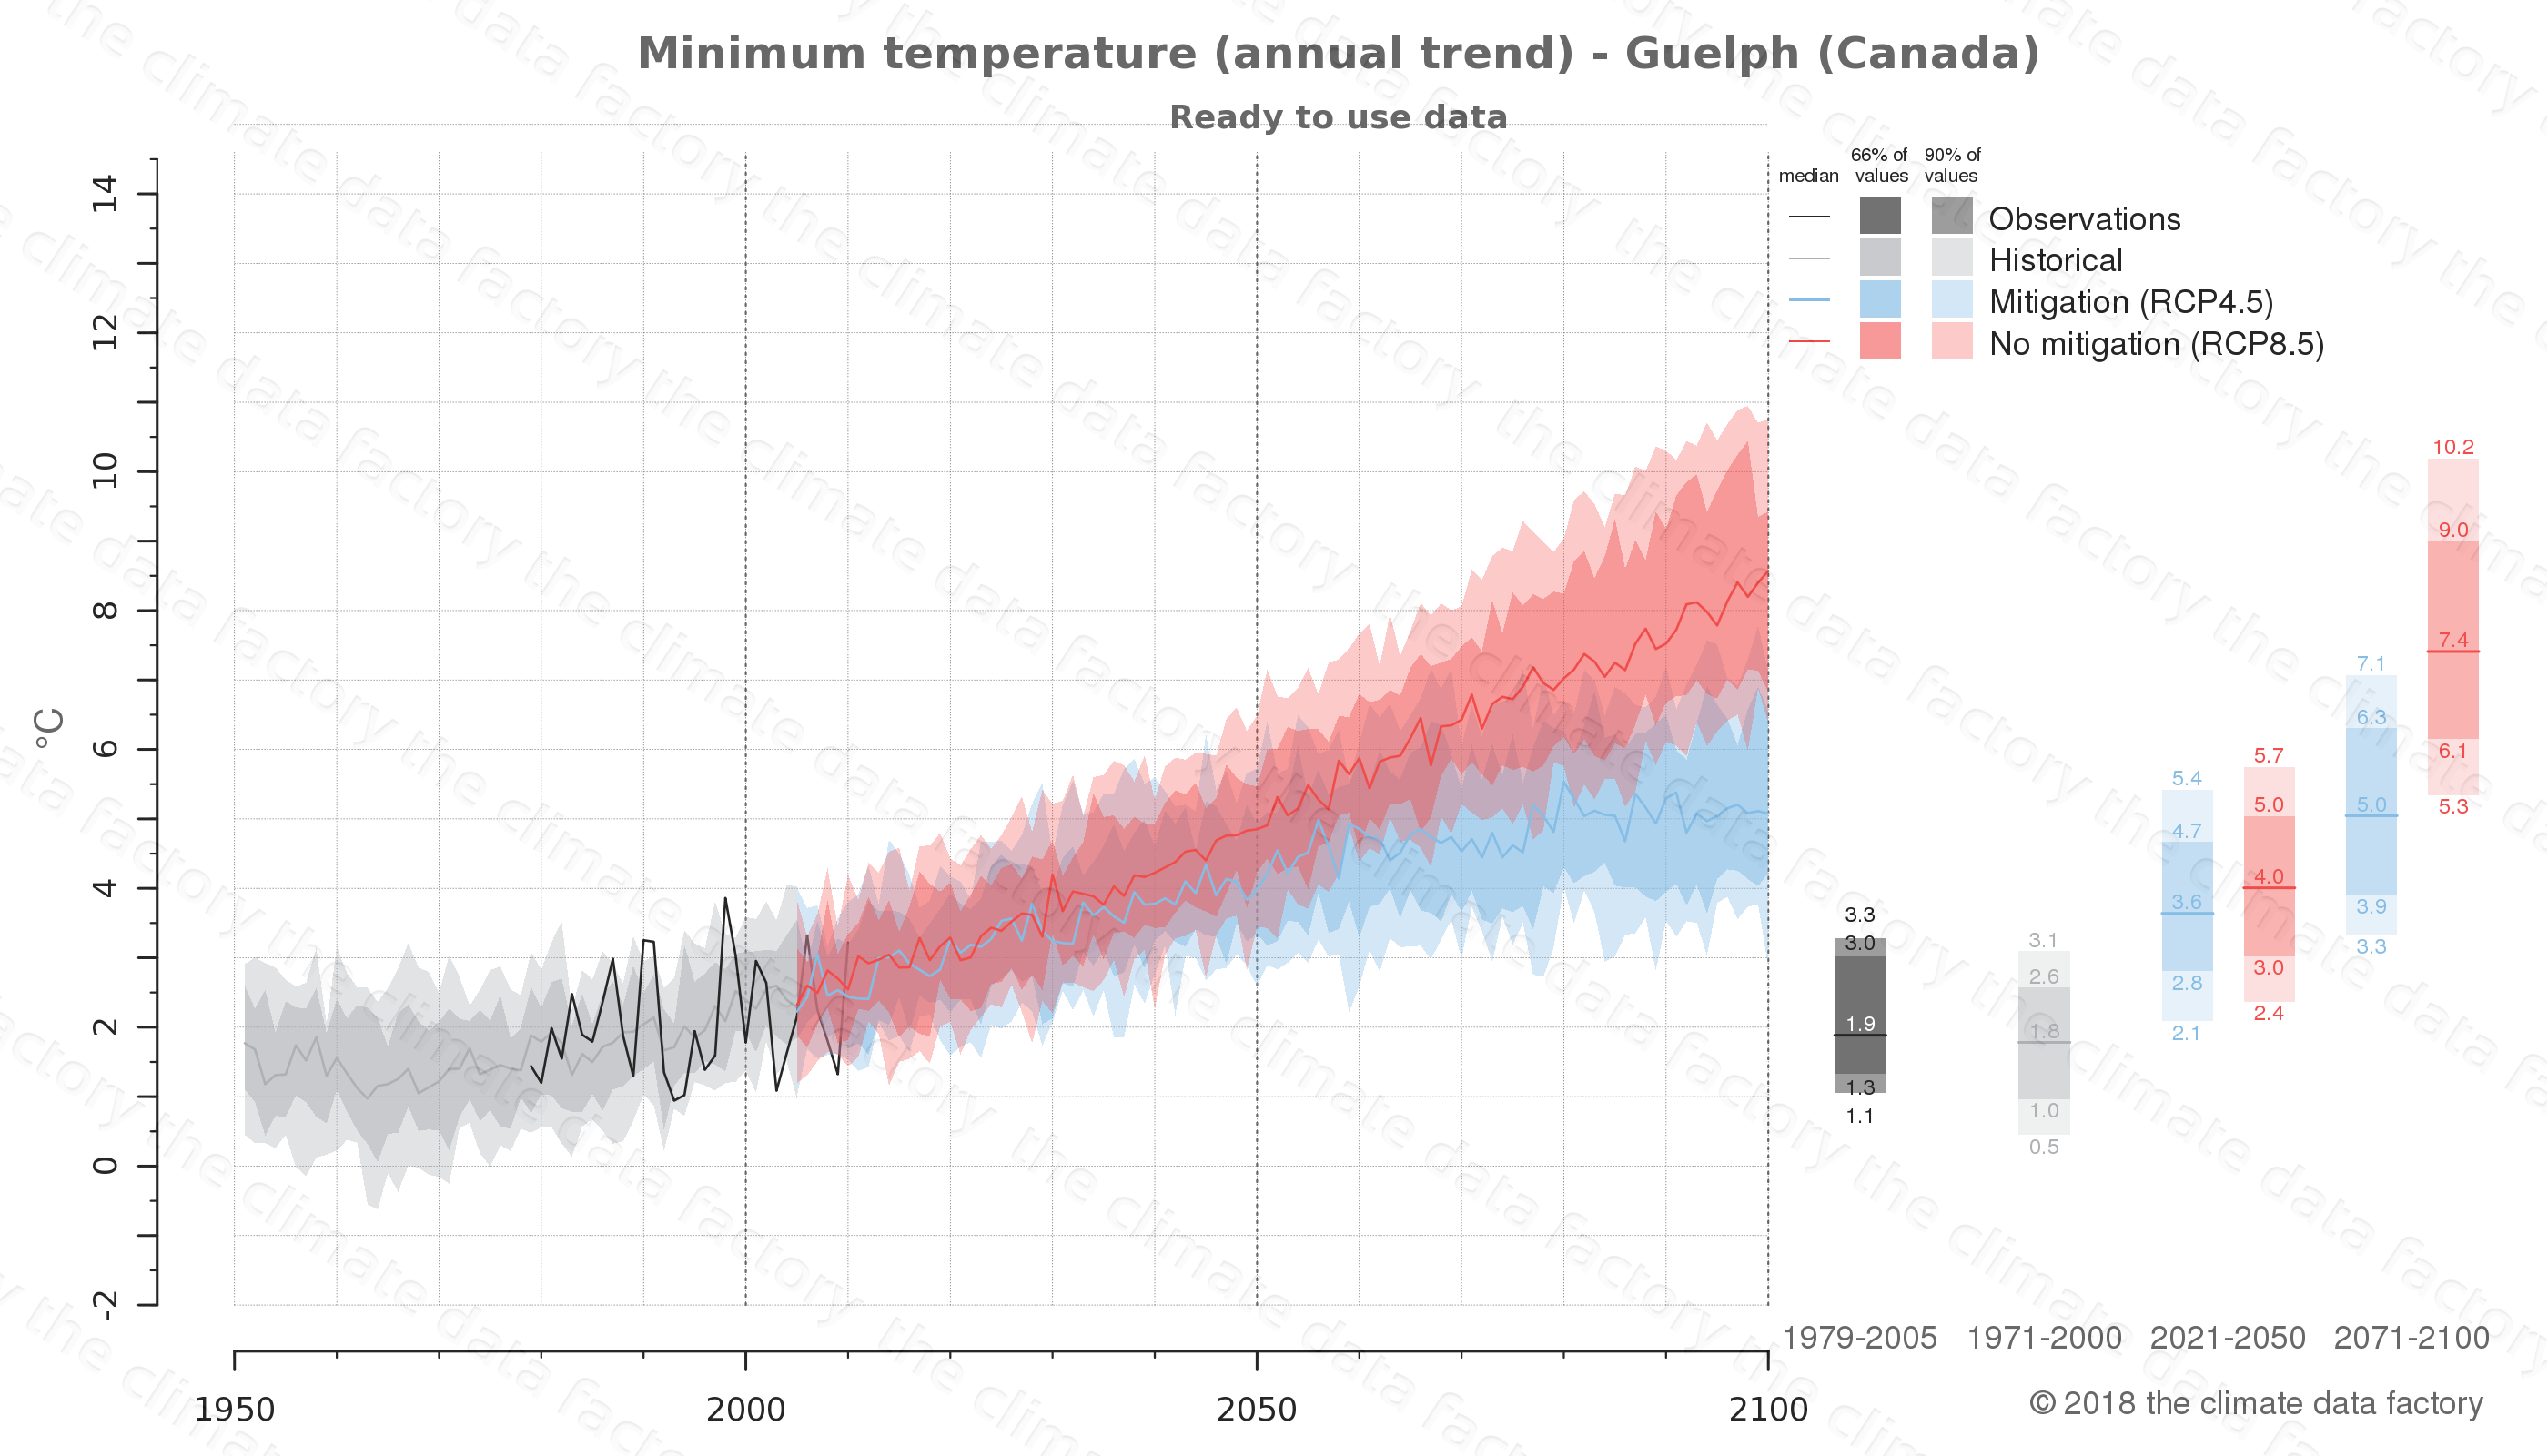 climate change data policy adaptation climate graph city data minimum-temperature guelph canada